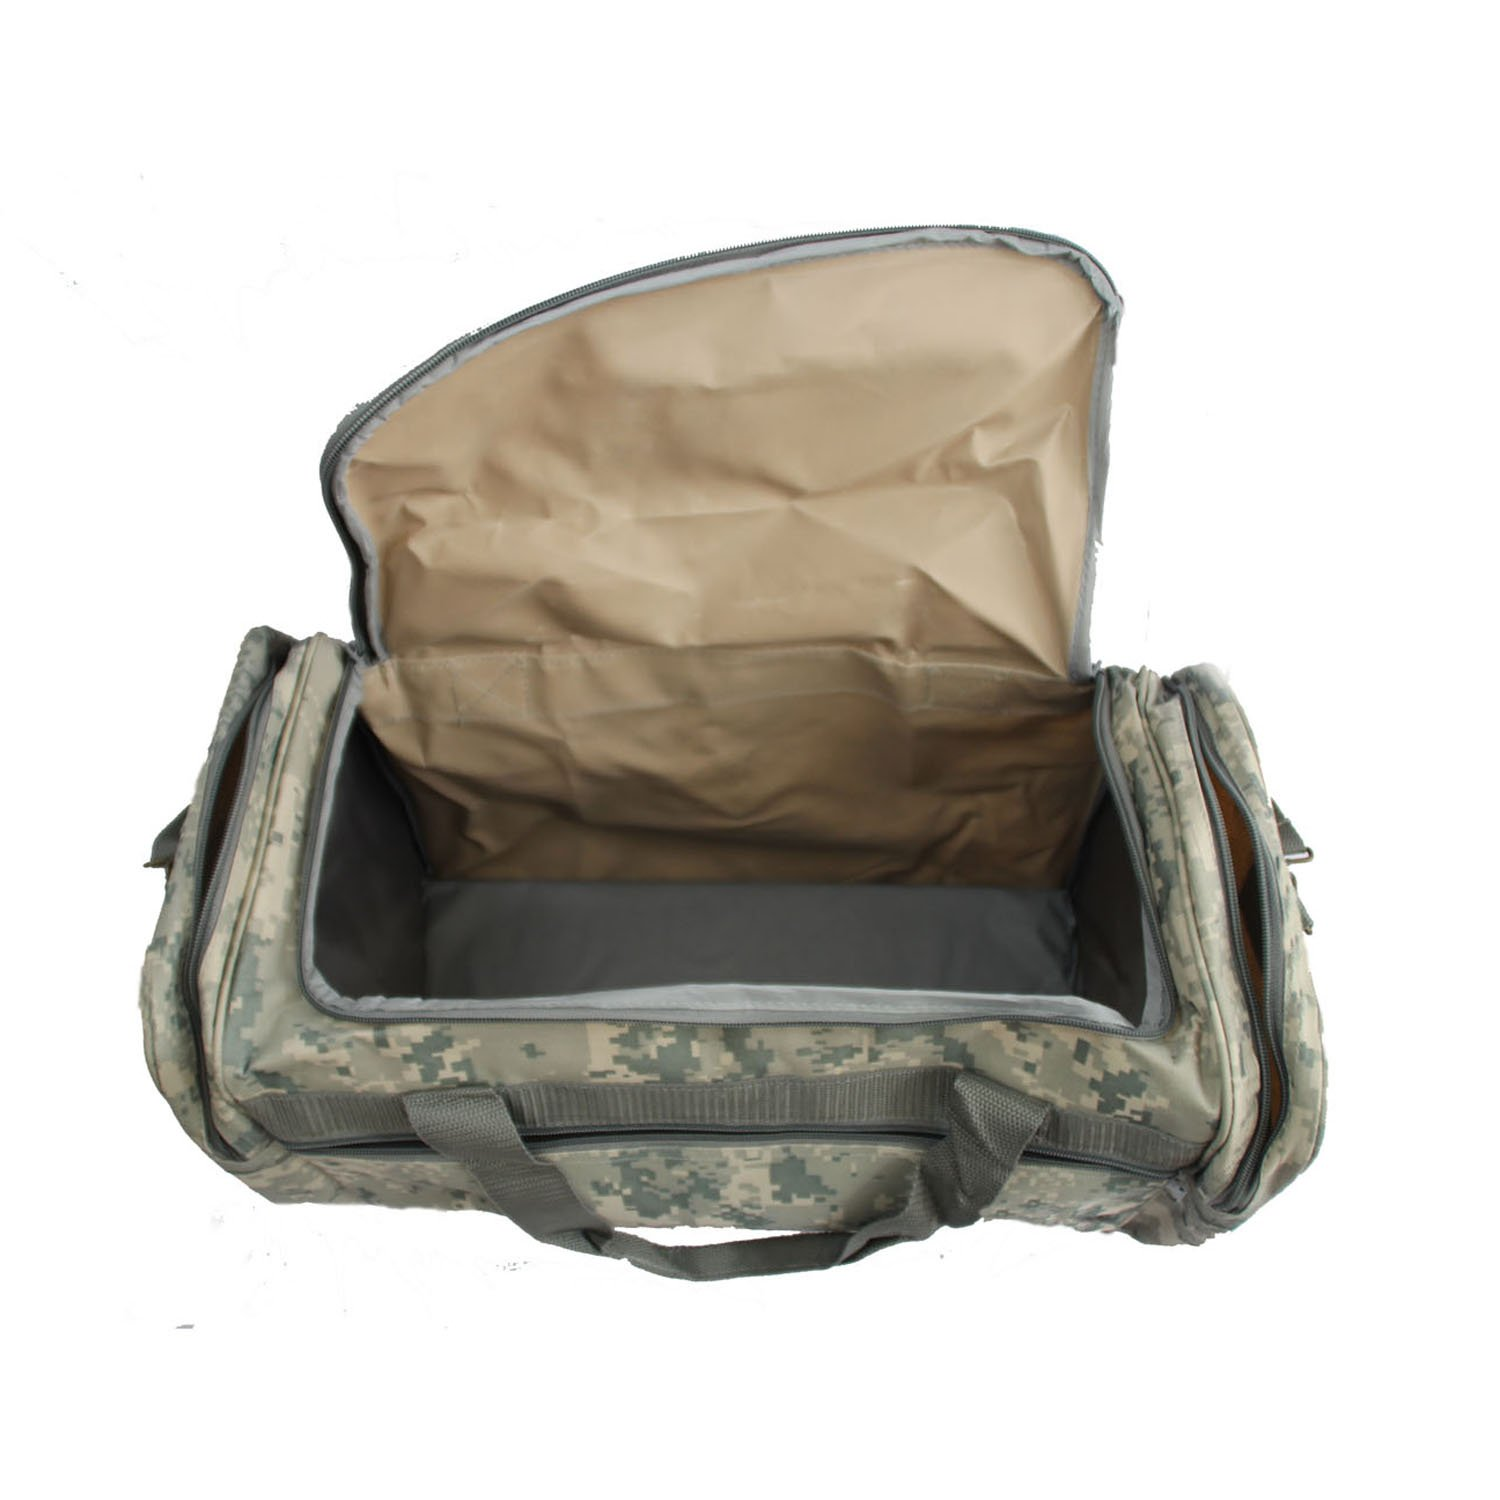 Xtitix Delta Light Weight Military Digital Camouflage Weekender Duffel Bag Camo